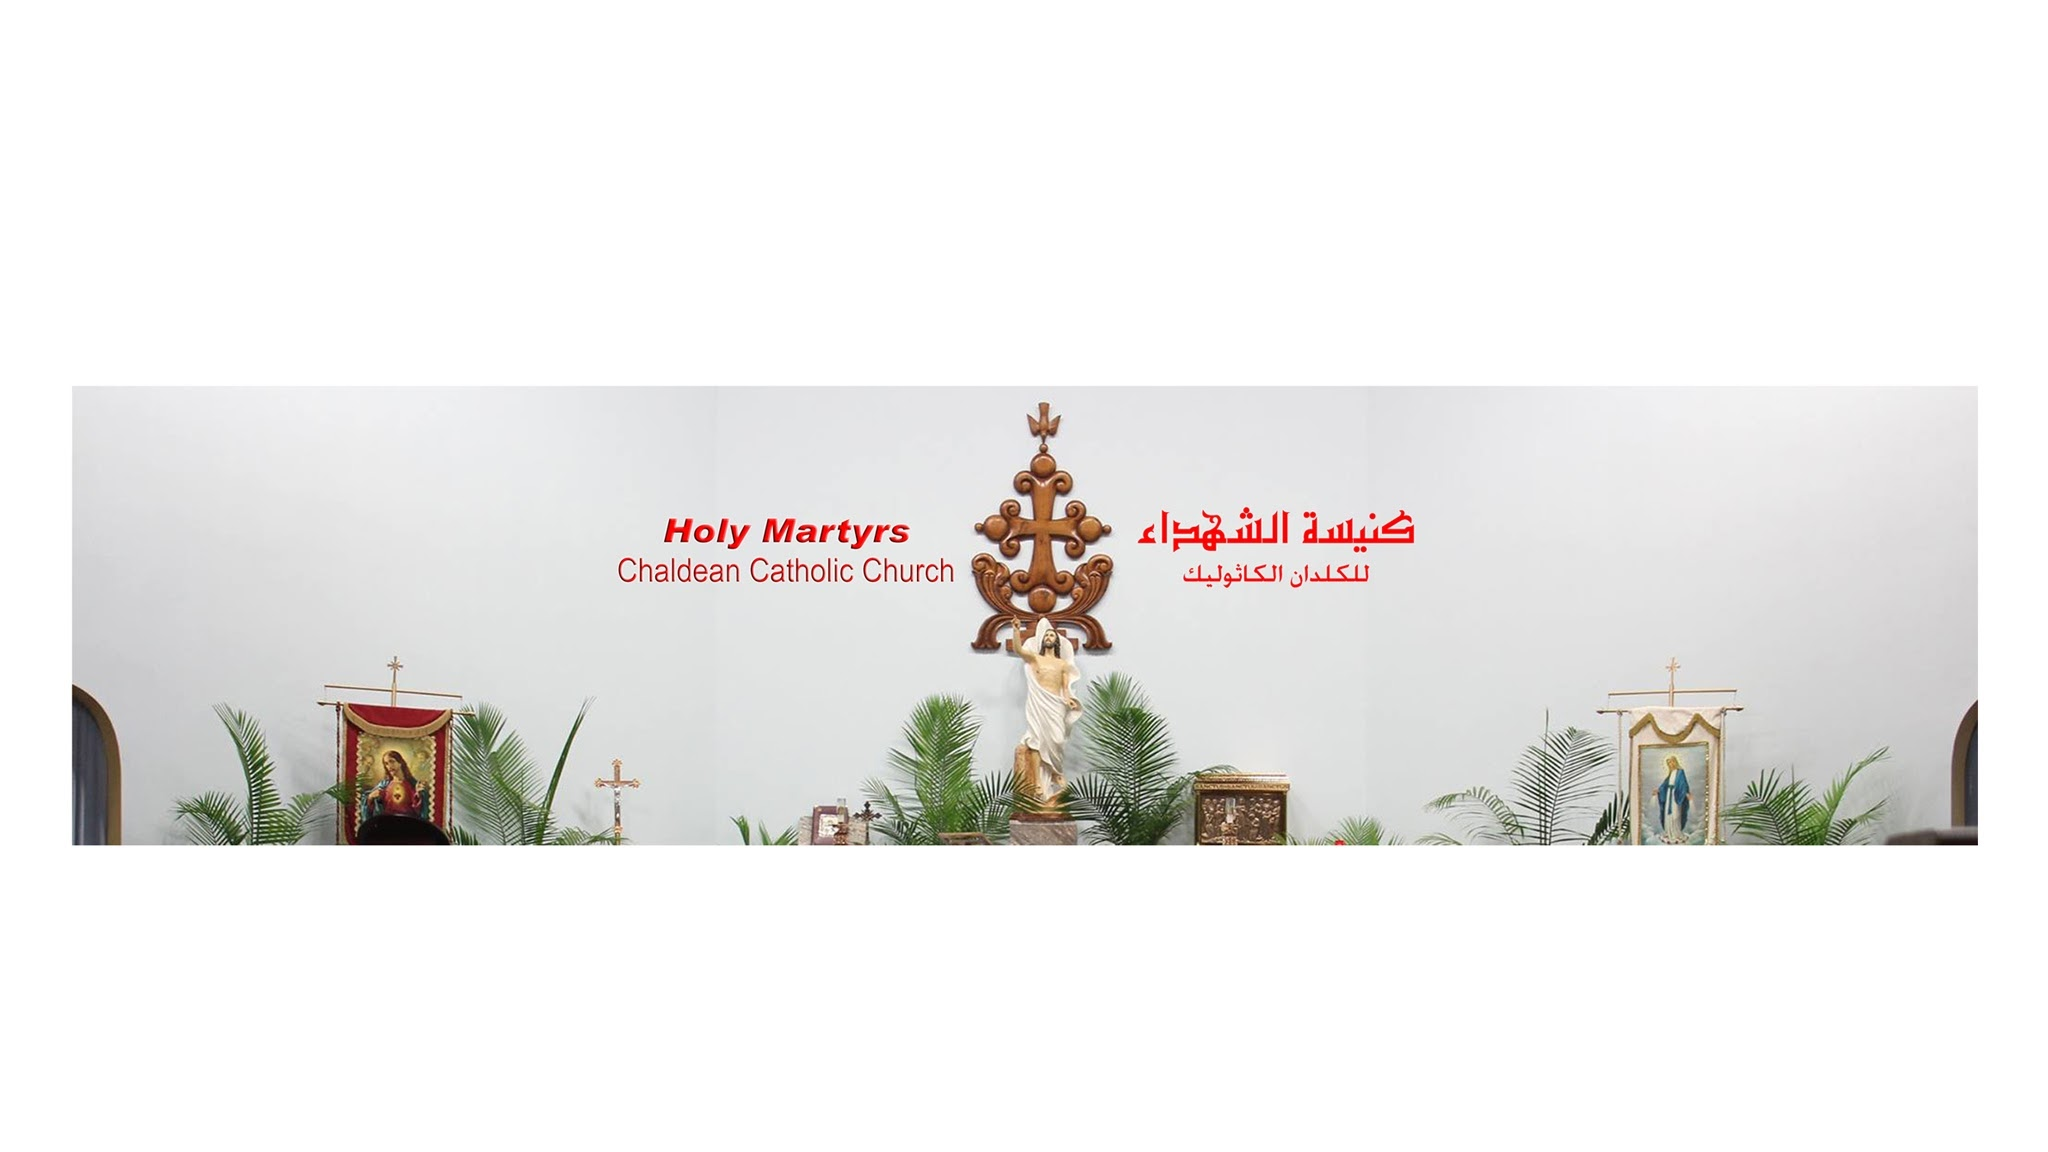 كنيسة الشهداء Holy Martyrs Chaldean Catholic Church